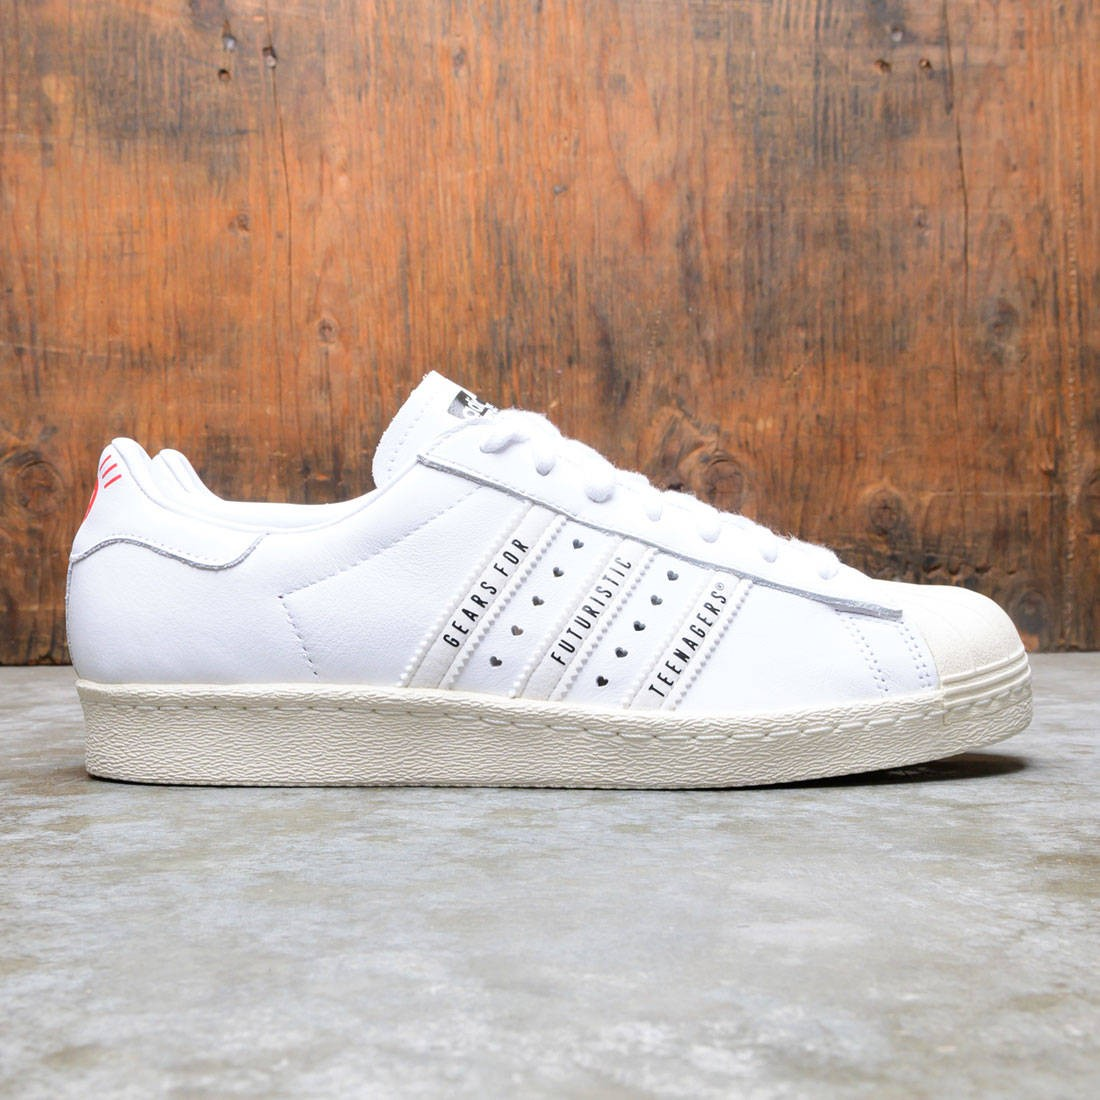 Adidas x Human Made Men Superstar 80s (white / core white / off white)